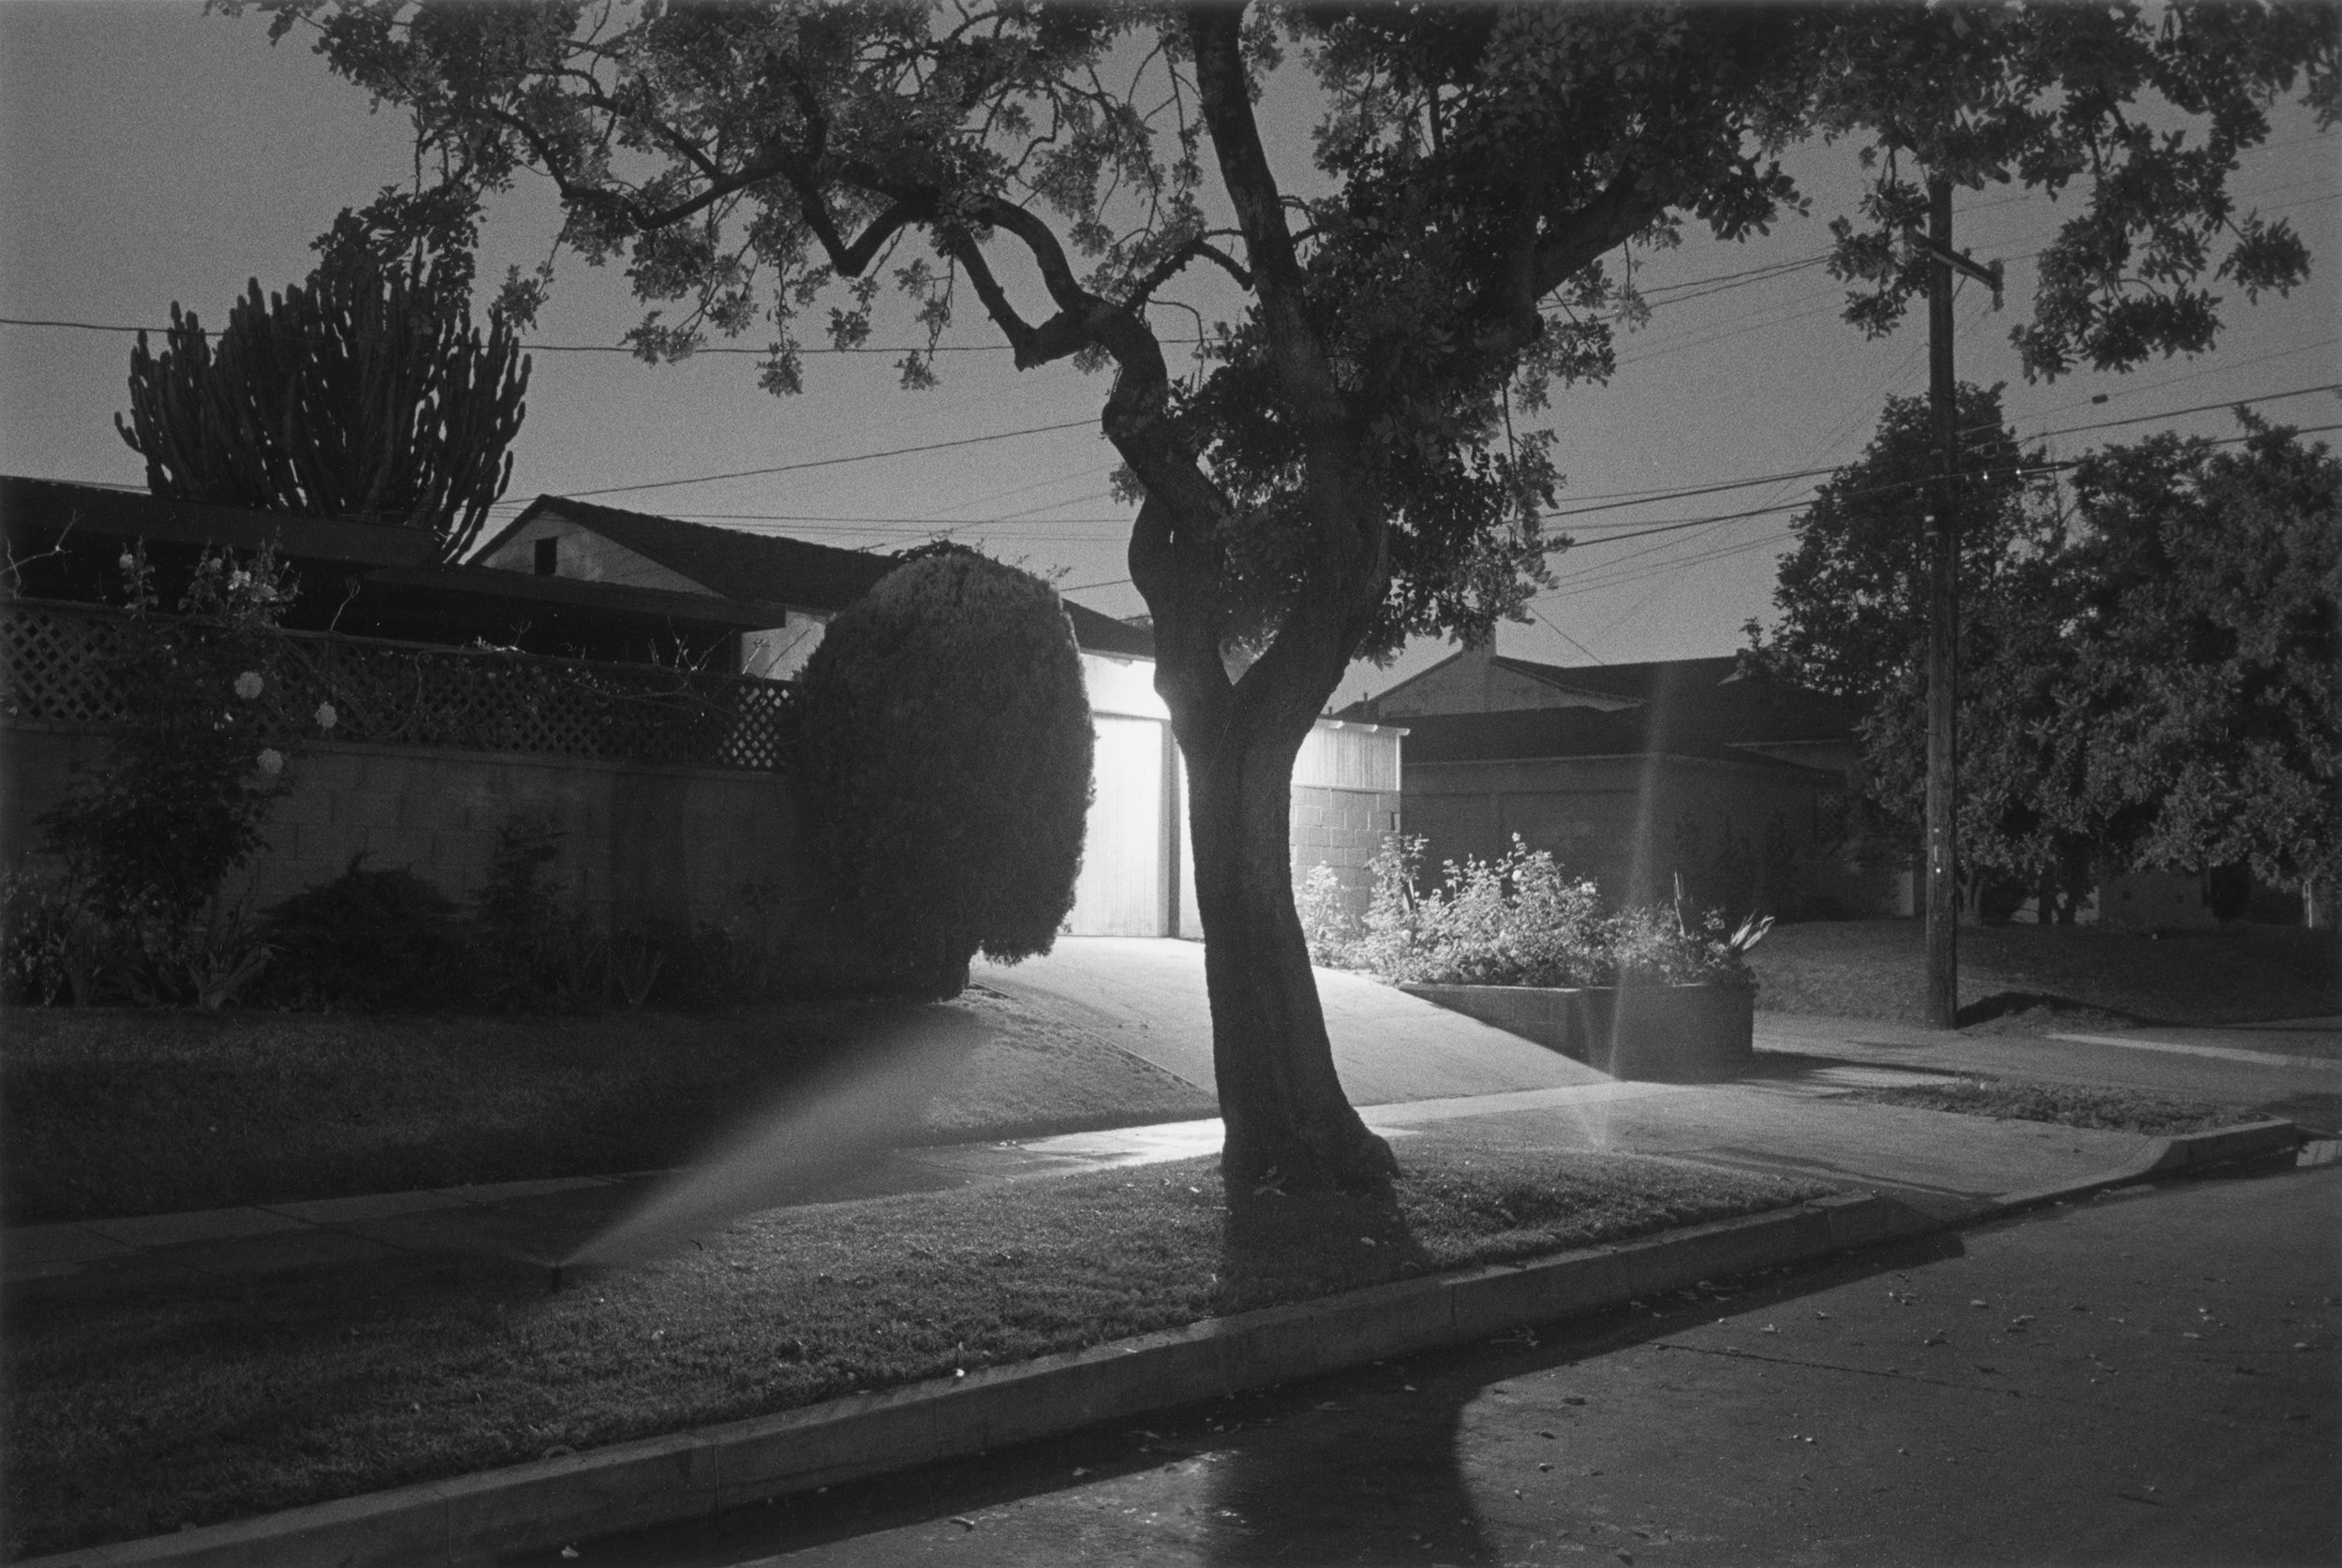 Night Walk No. 5,   1998, De la série   Sunset Park   © Henry Wessel; courtesy Pace/MacGill Gallery, New York